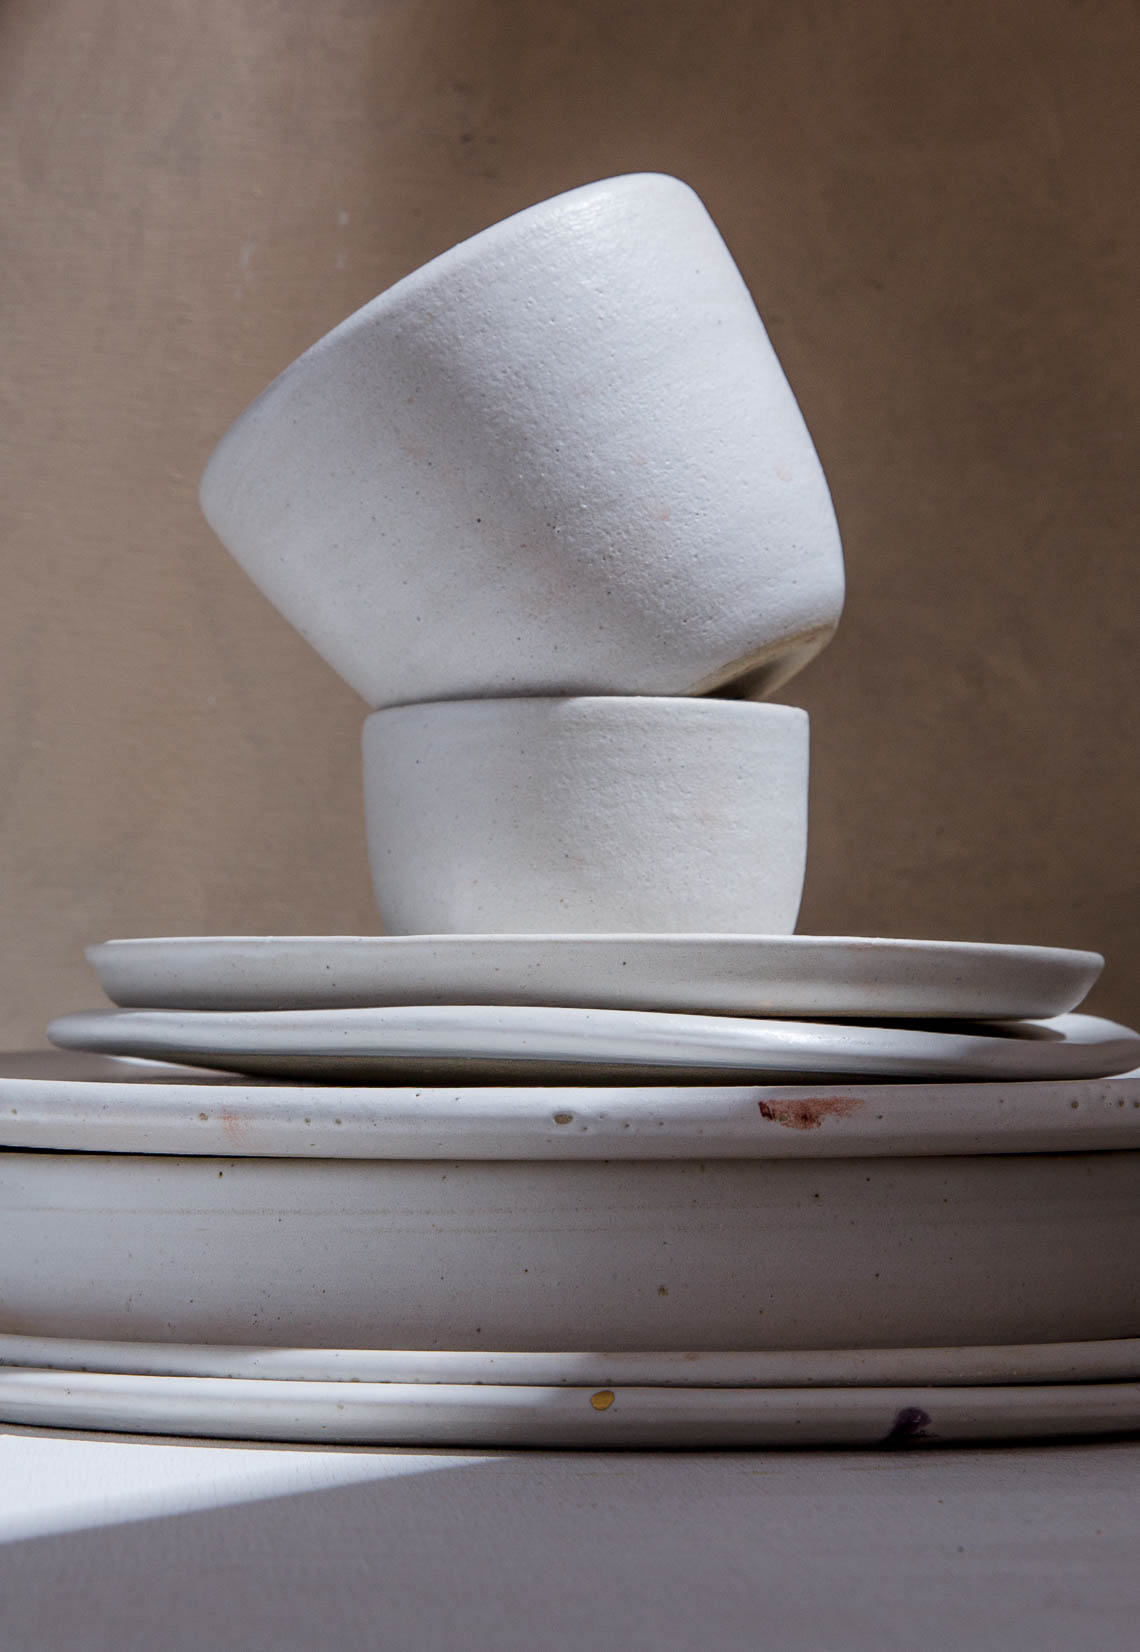 Hilary_McMullen_LA_Photographer_BeauRush_Ceramics_5_2019-260